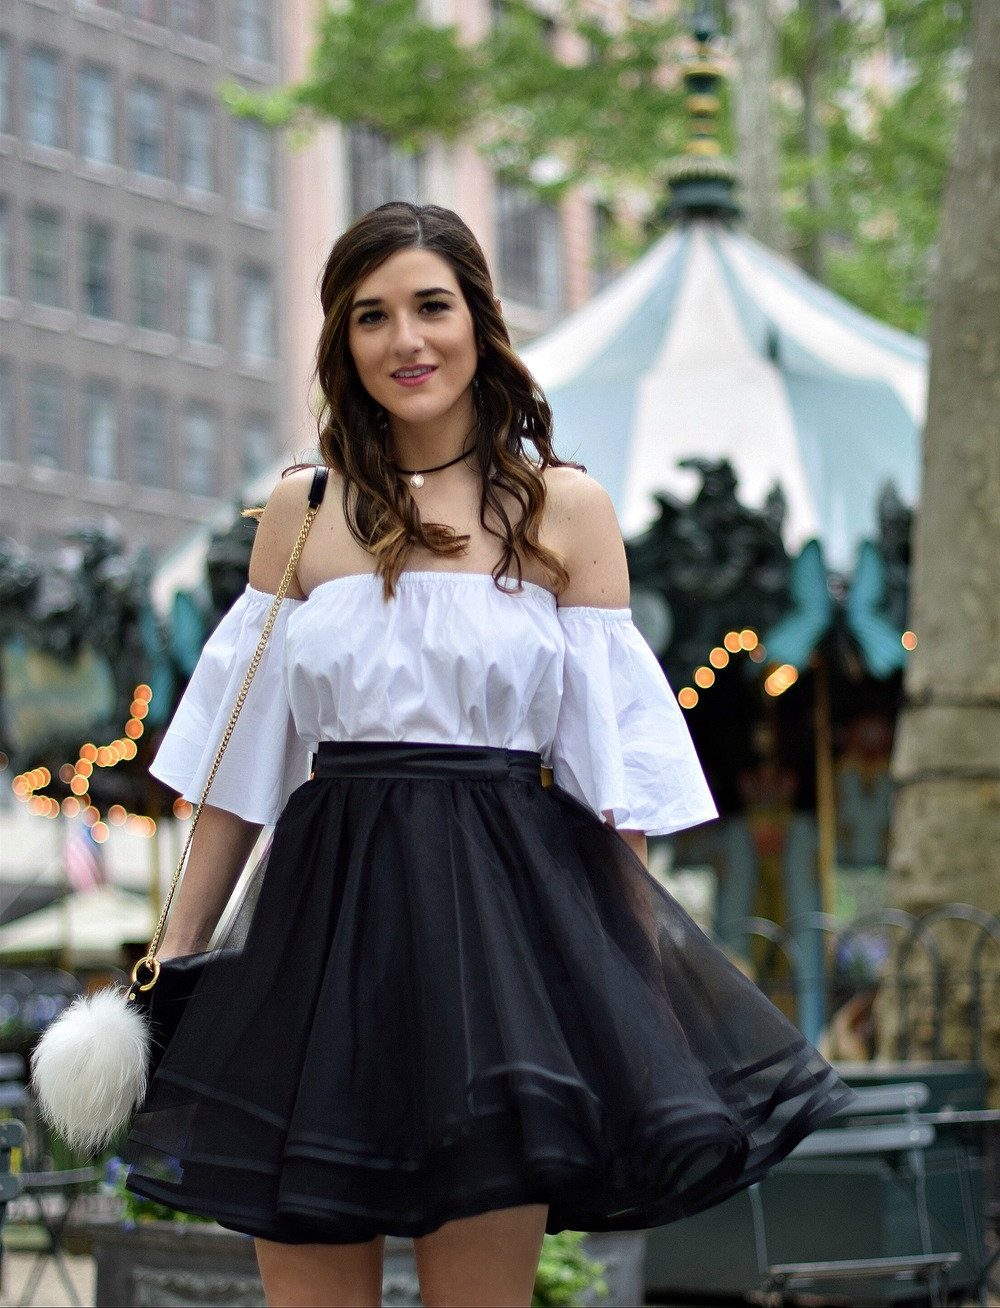 Naomy Stern Couture Custom Tulle Skirt White Heart Louboutins & Love Fashion Blog Esther Santer NYC Street Style Blogger Christian Louboutin Outfit OOTD Elegant Model Photoshoot Fancy Cold Shoulder Ivanka Trump Bag Purse Pom Pom Girl Pretty Choker.JPG